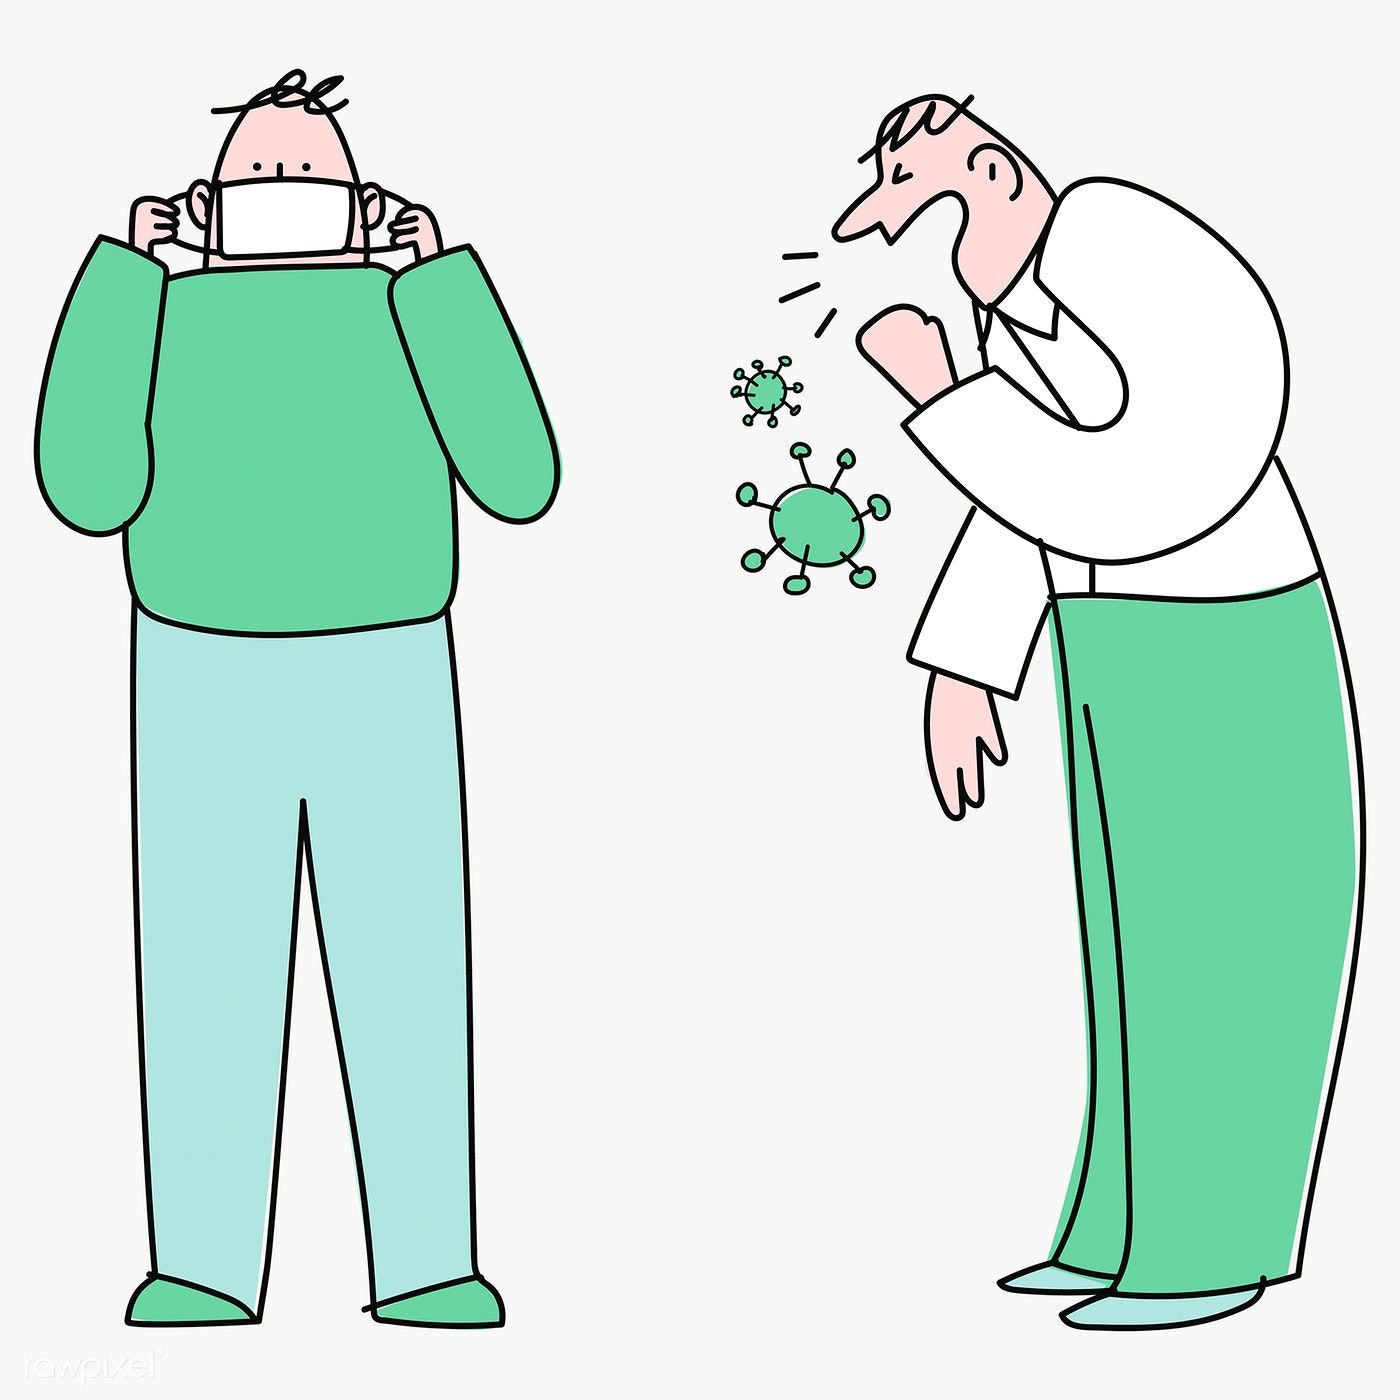 coughing man in public transparent png free image by rawpixel com nunny in 2020 png free png vector background pattern pinterest